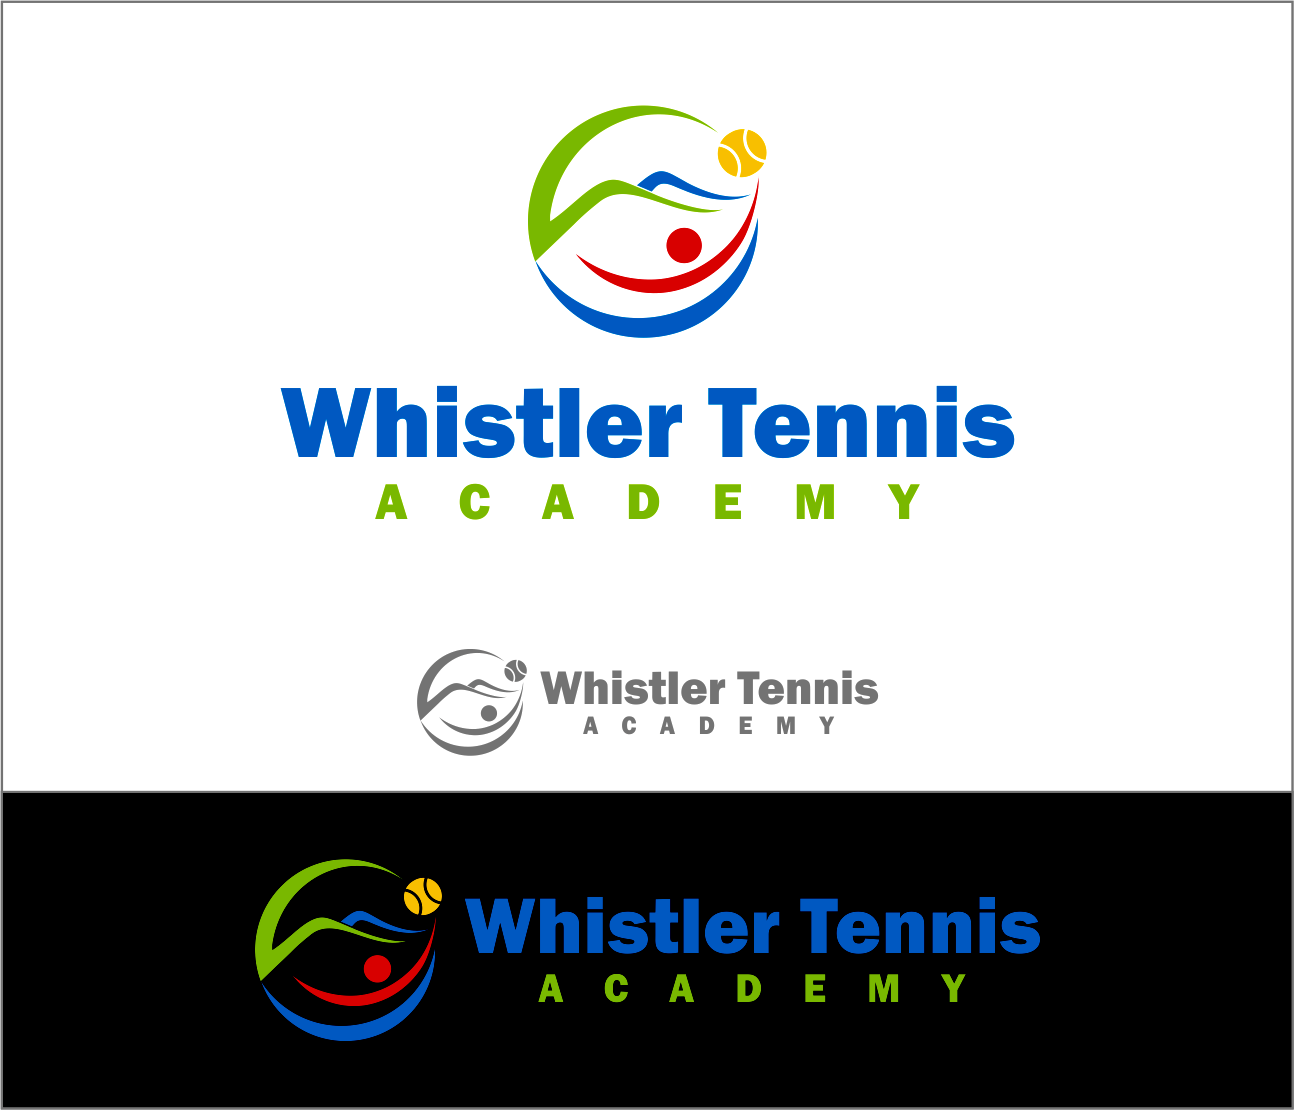 Logo Design by Armada Jamaluddin - Entry No. 62 in the Logo Design Contest Imaginative Logo Design for Whistler Tennis Academy.